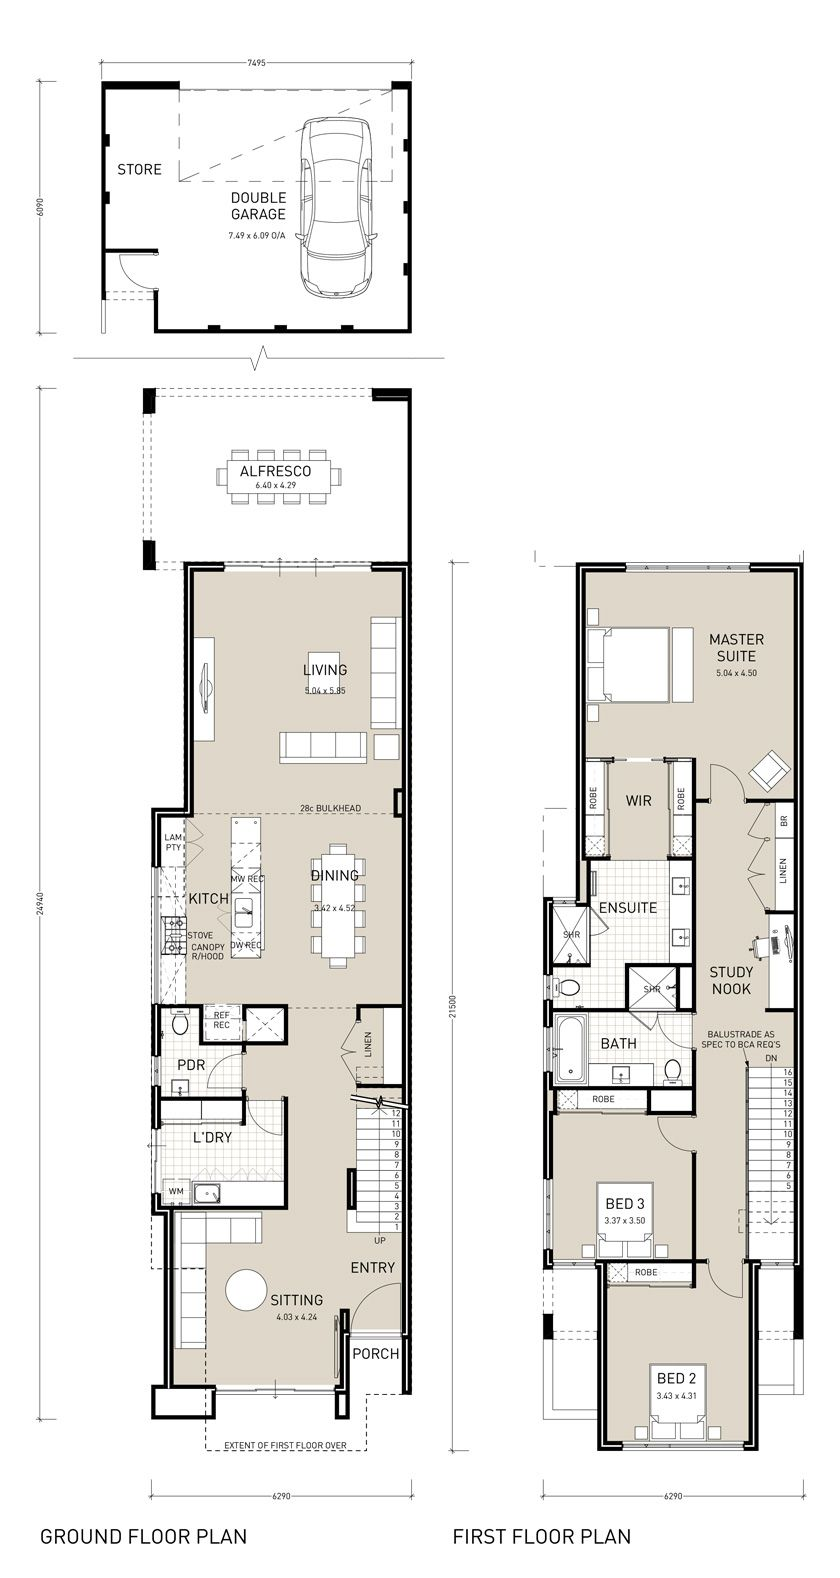 narrow two story house plans - Google Search | Plans ...